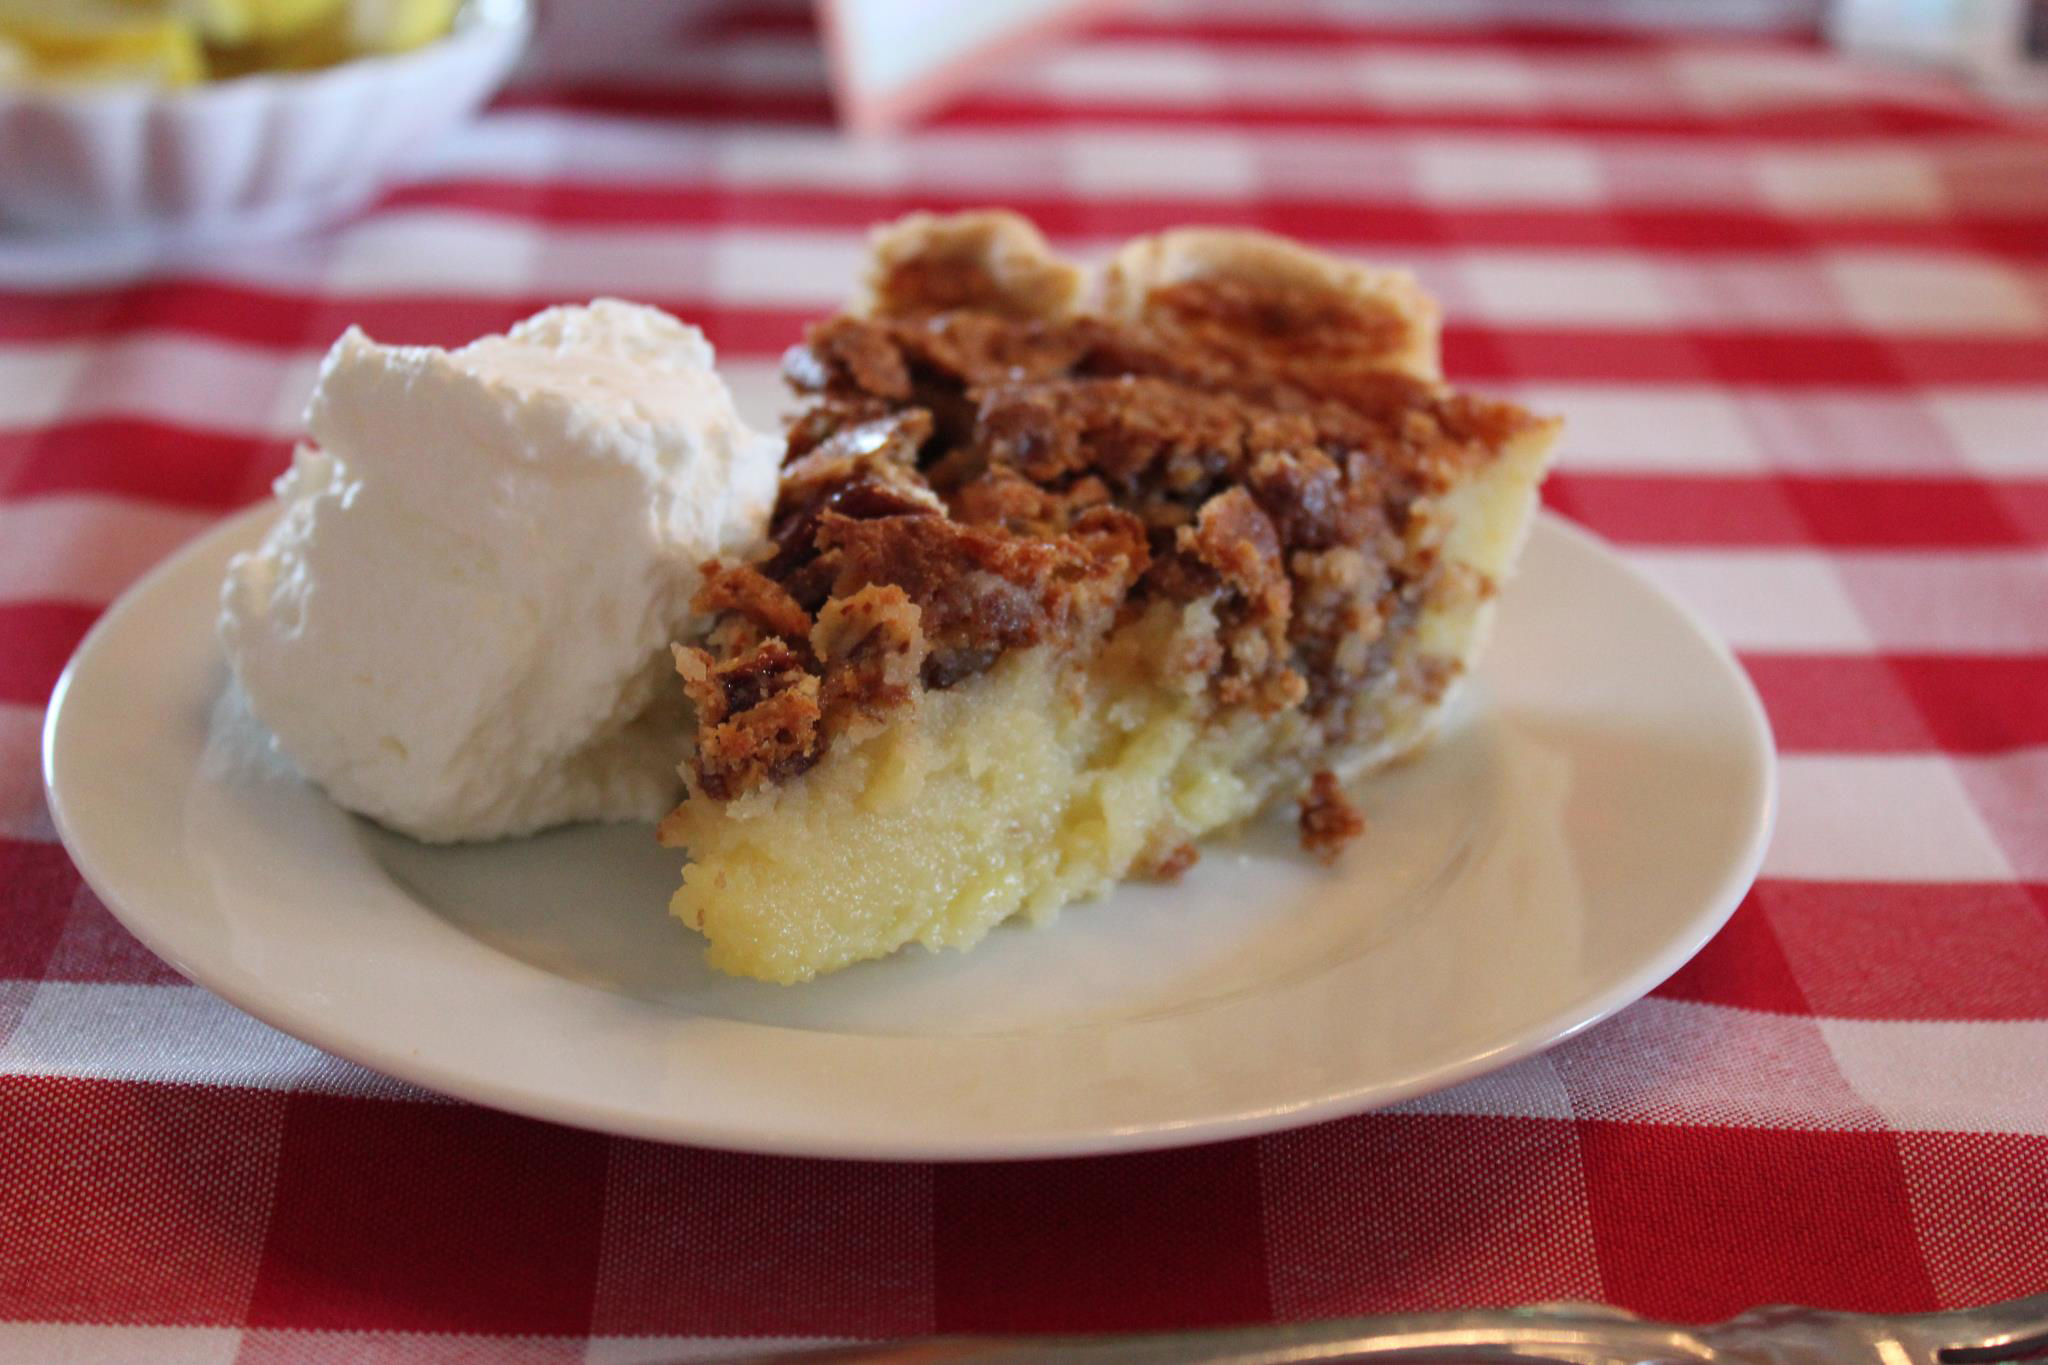 Cook Up The Best Tasting Sexiest Pecan Pie Recipe On Earth